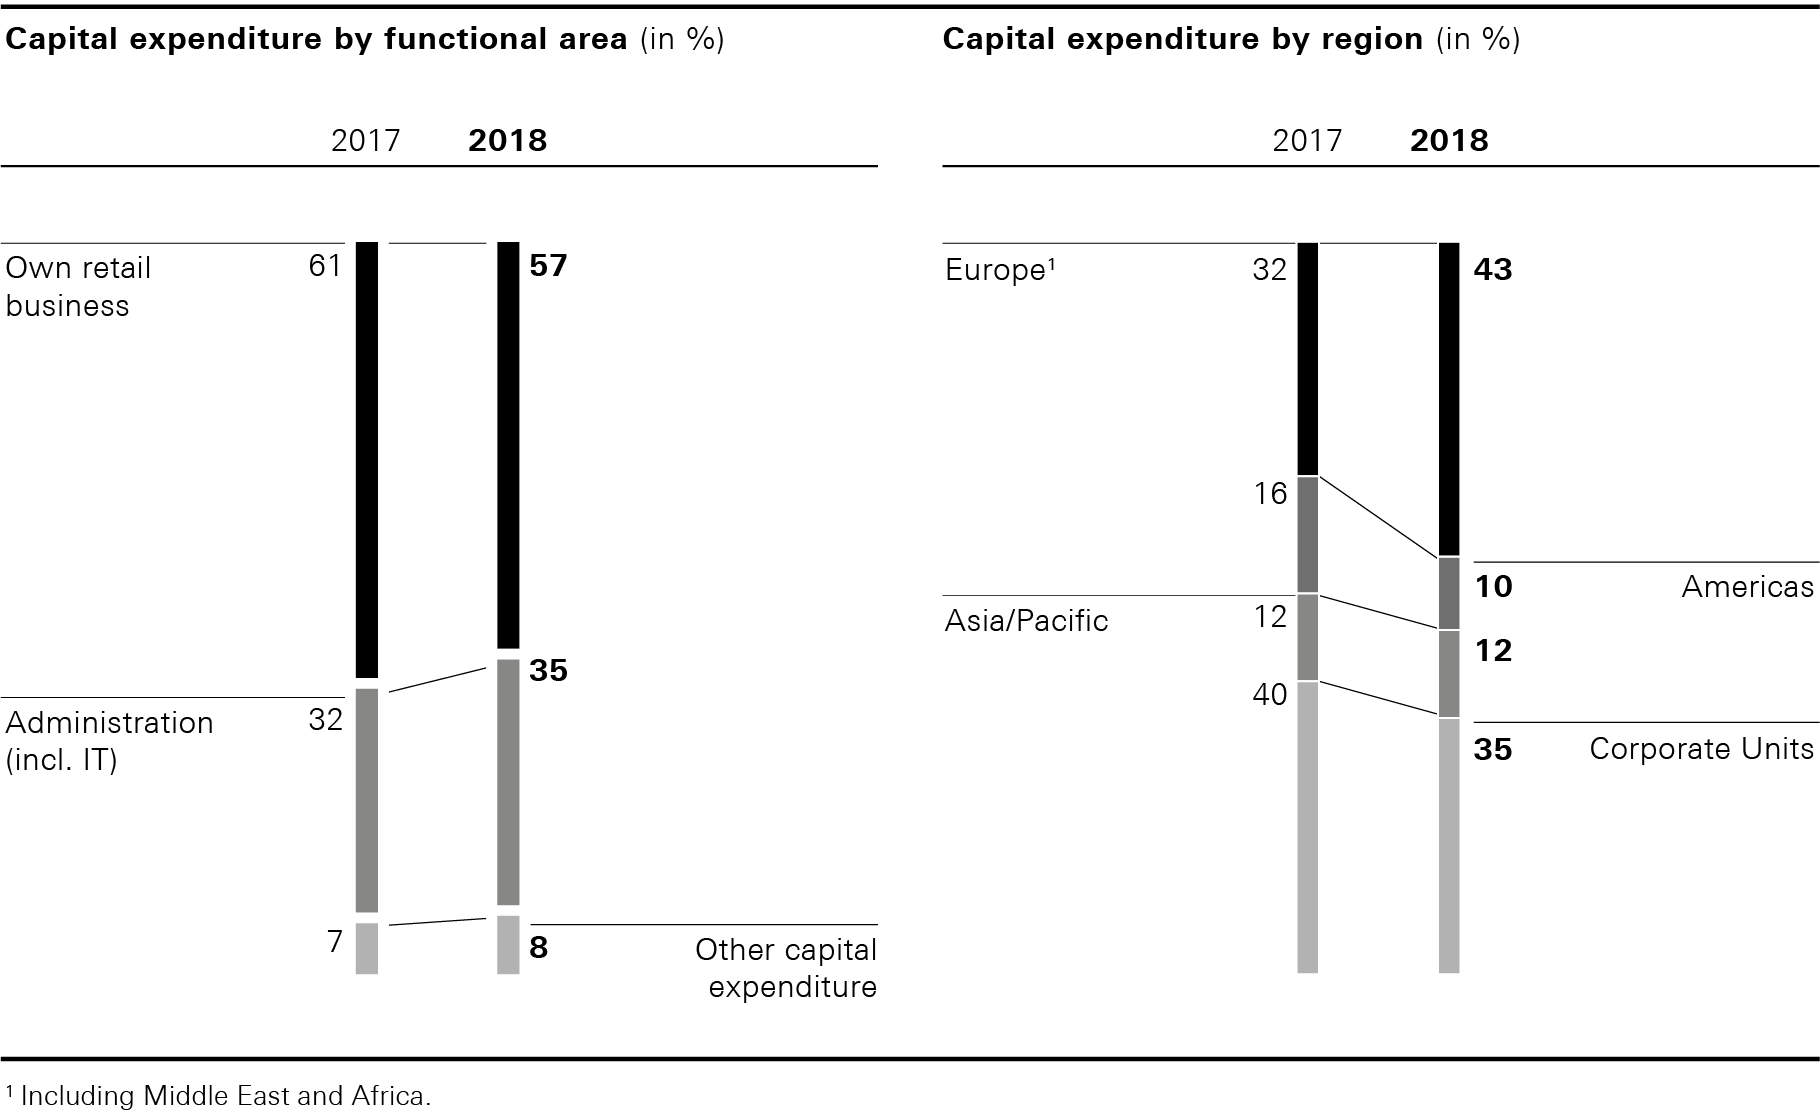 Capital expenditure by functional area and by region (bar chart)